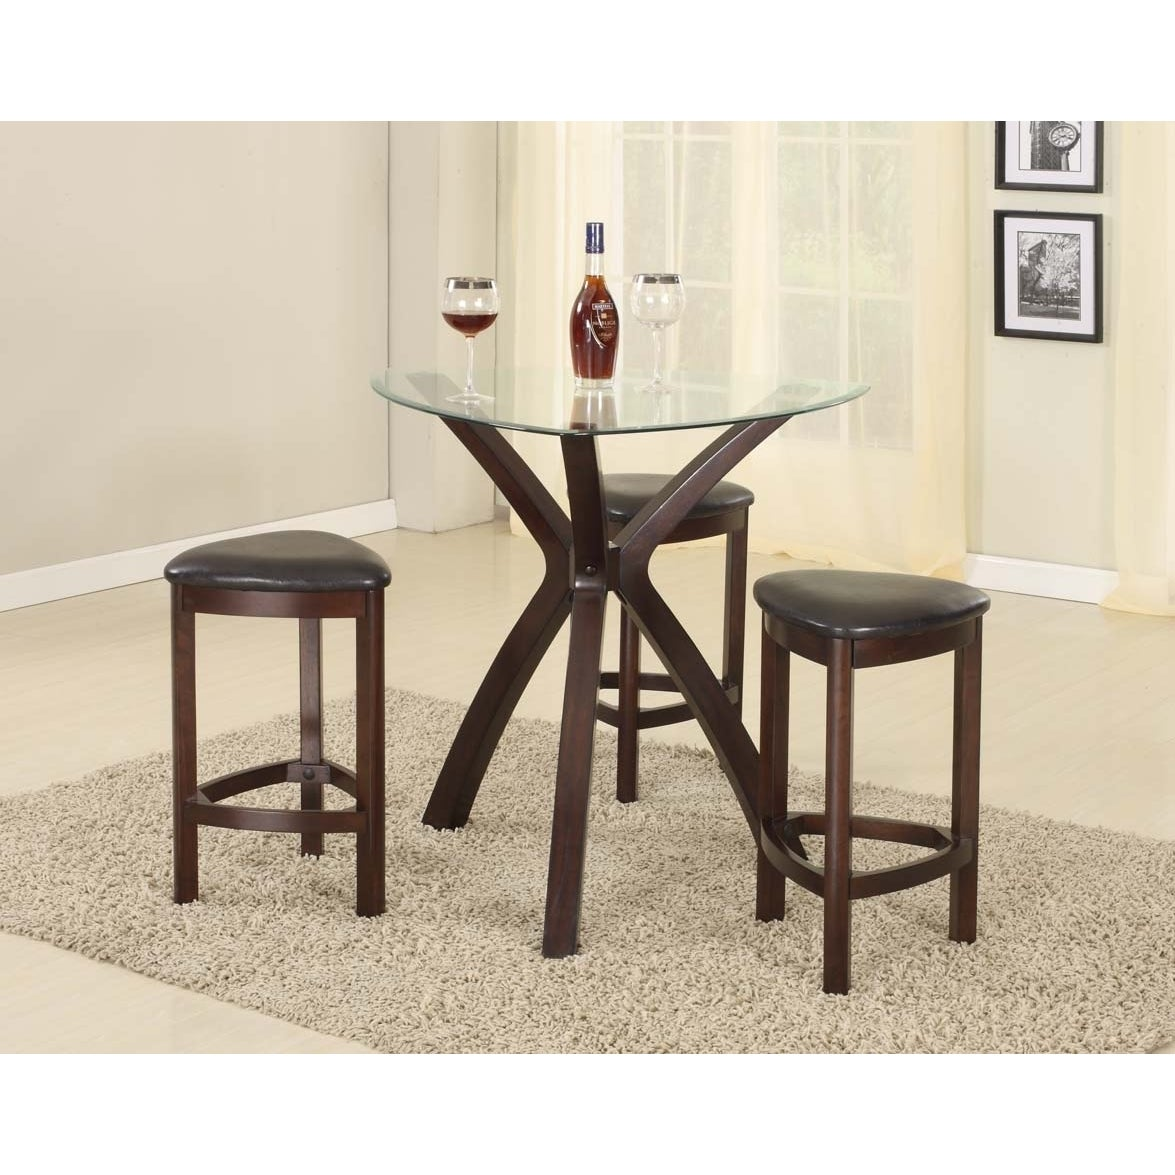 4 Piece Triangle Solid Wood Bar Table And Stools With Glass Top In Dark  Brown   Free Shipping Today   Overstock   18617074